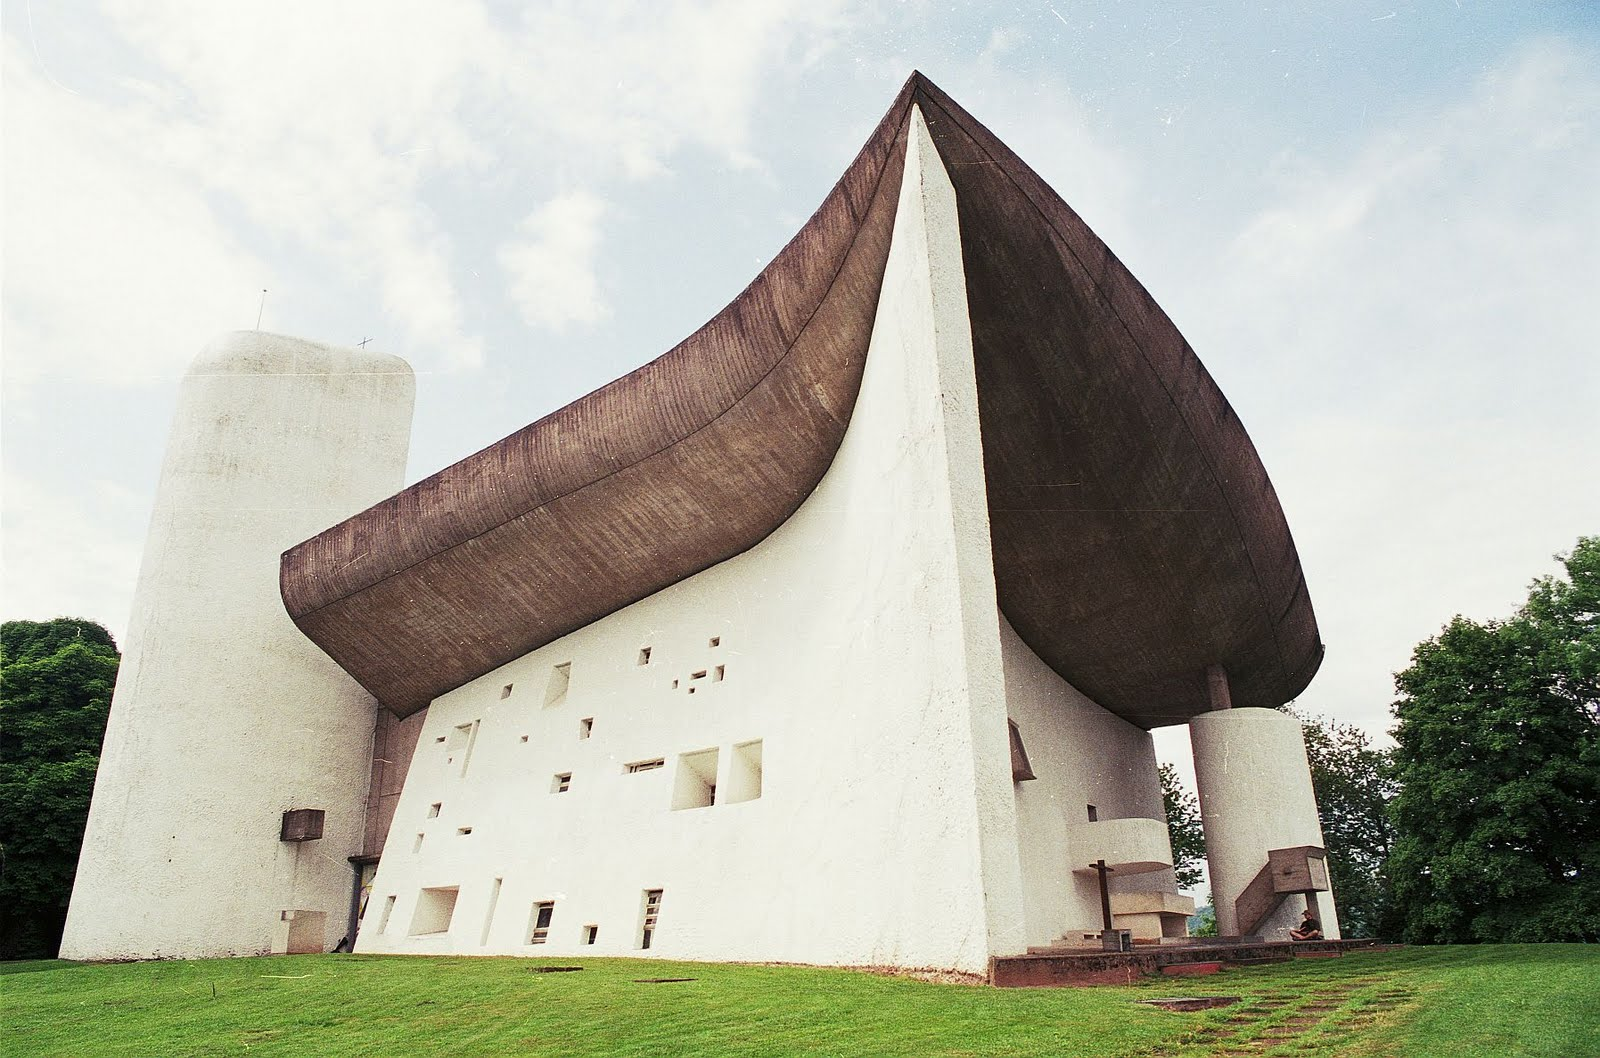 The architecture of Le Corbusier